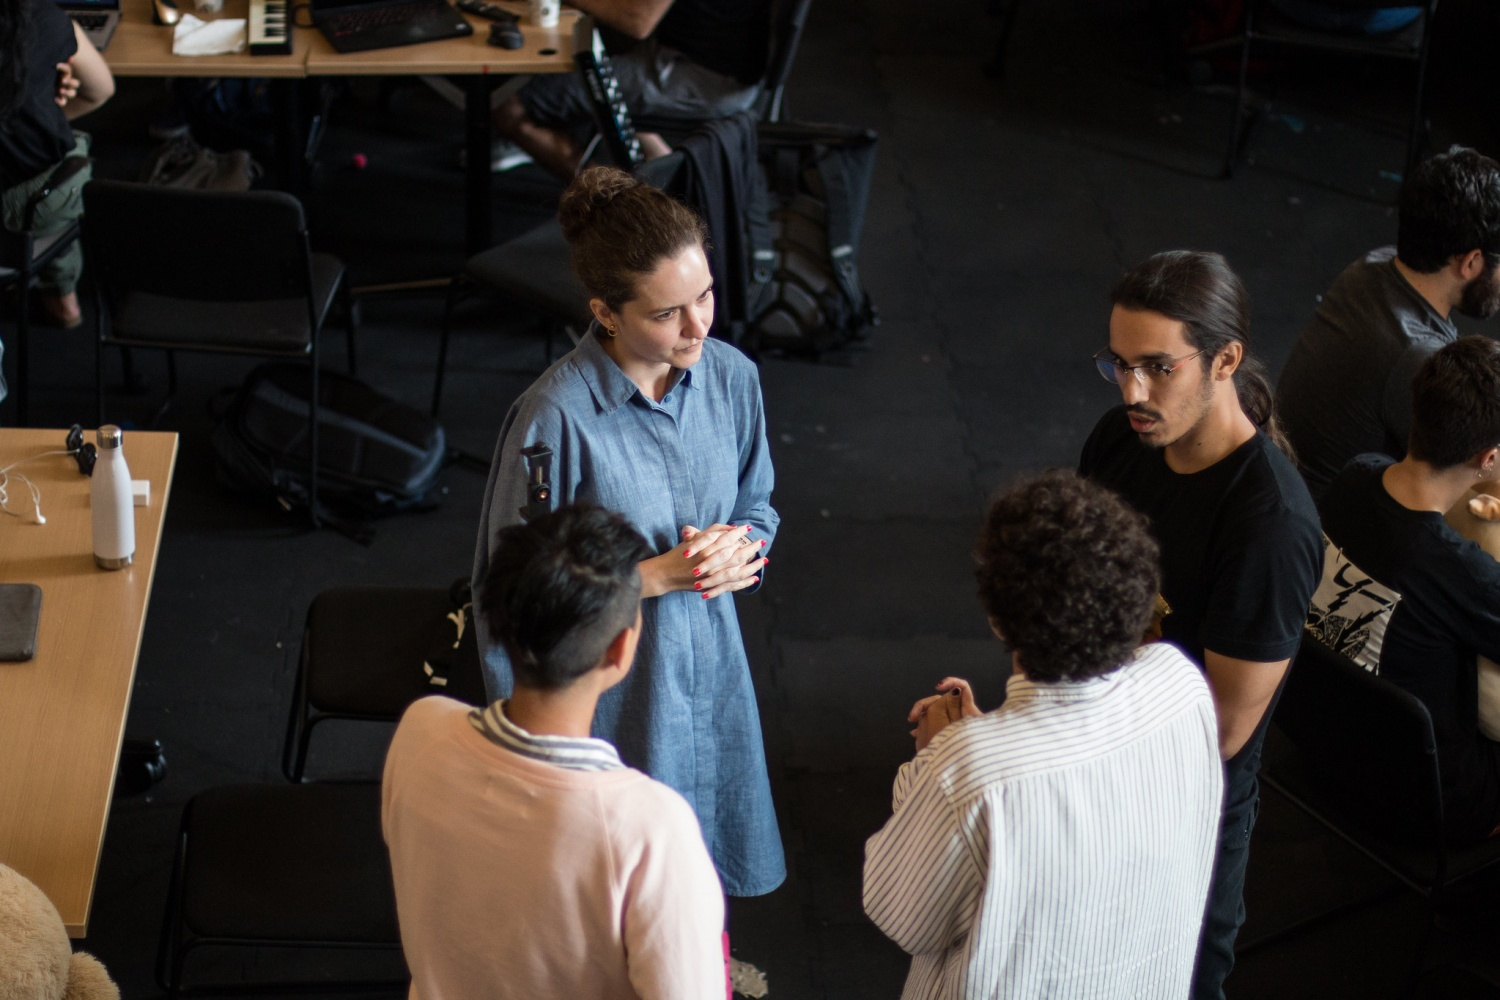 Four participants standing in a circle conversing